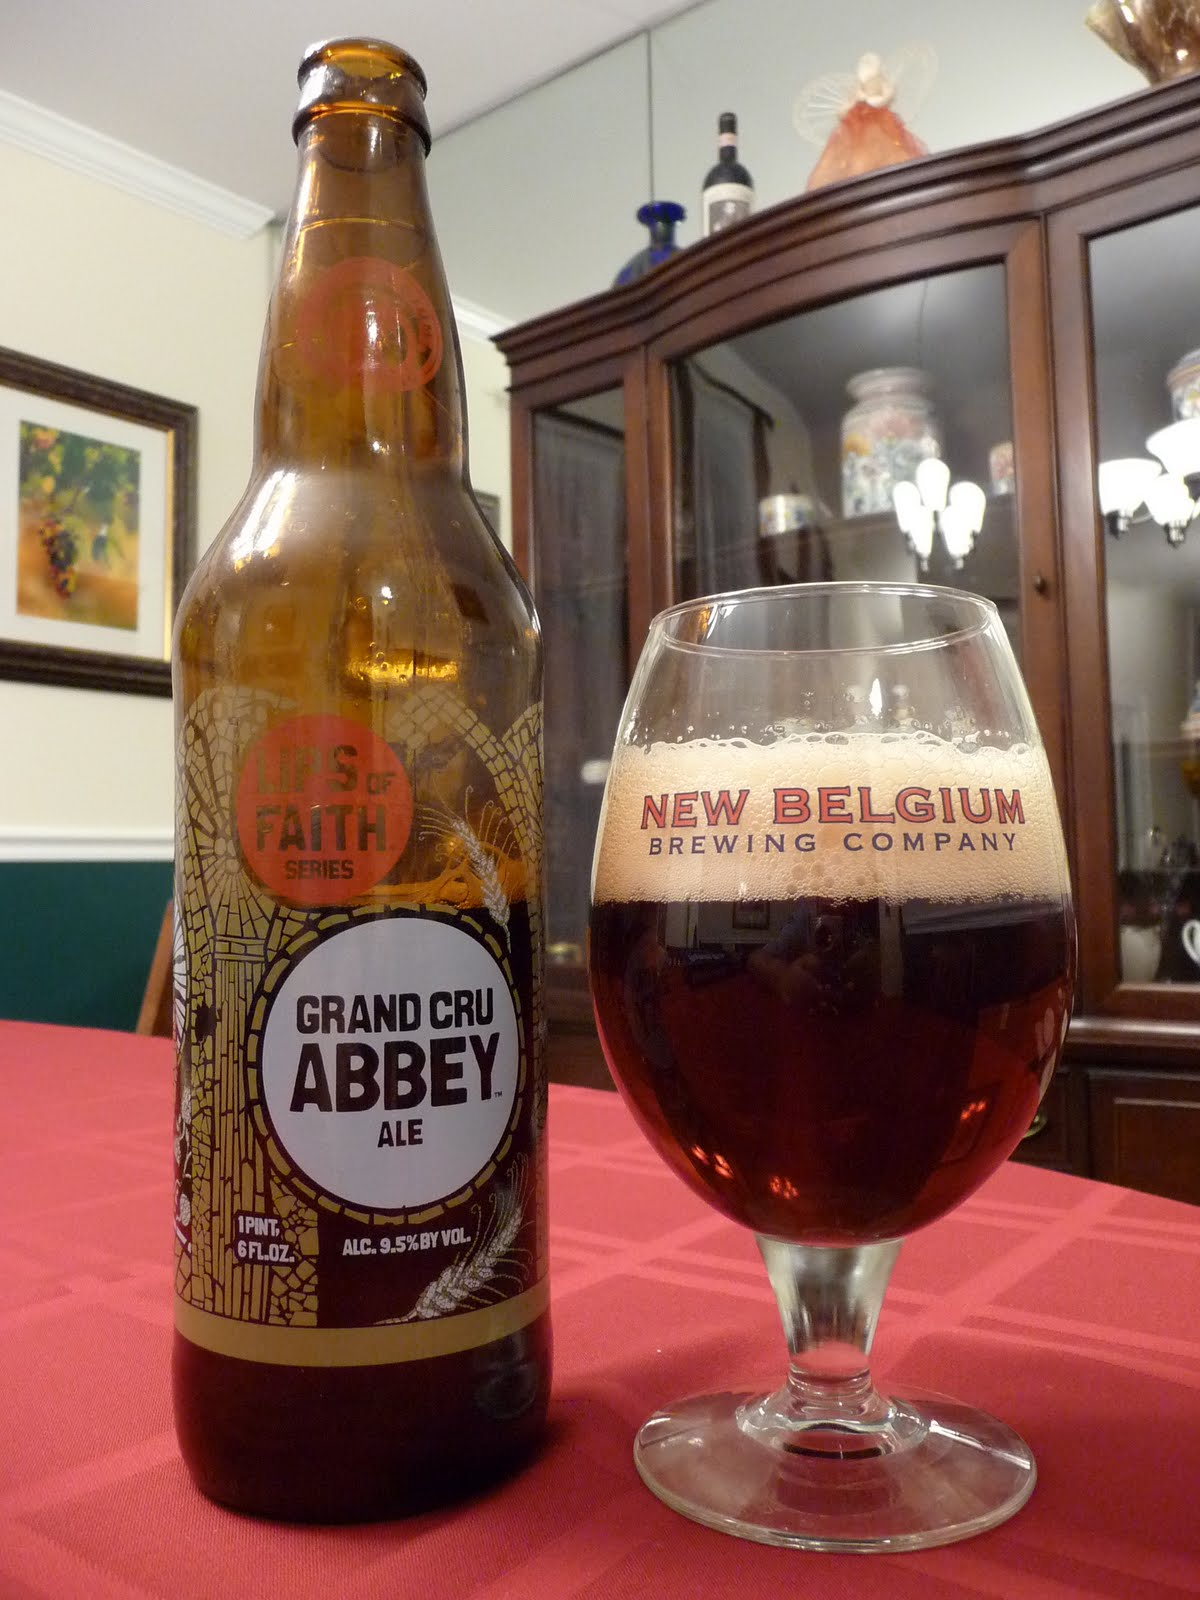 new belgium brewing company essay In 1991, lebesch opened the new belgium brewing company (nbb) with his wife, kim jordan, as the marketing director new belgium brewing a paper submitted in partial fulfillment for the bachelor of science degree in business administration and finance table of contents page no.